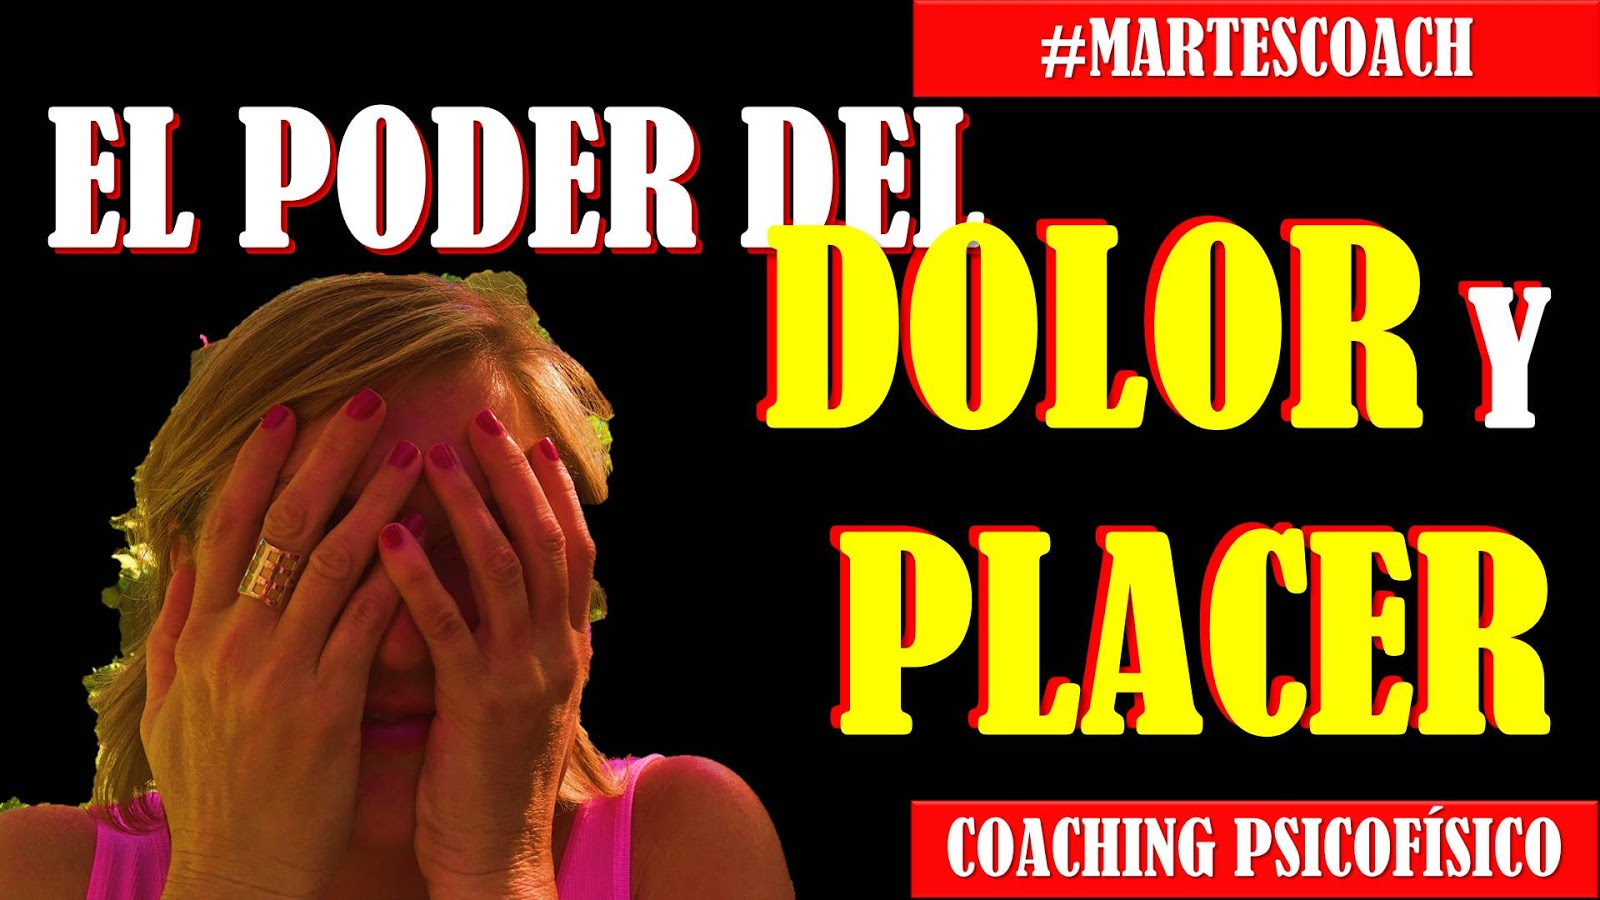 El poder del dolor y placer #MartesCoach